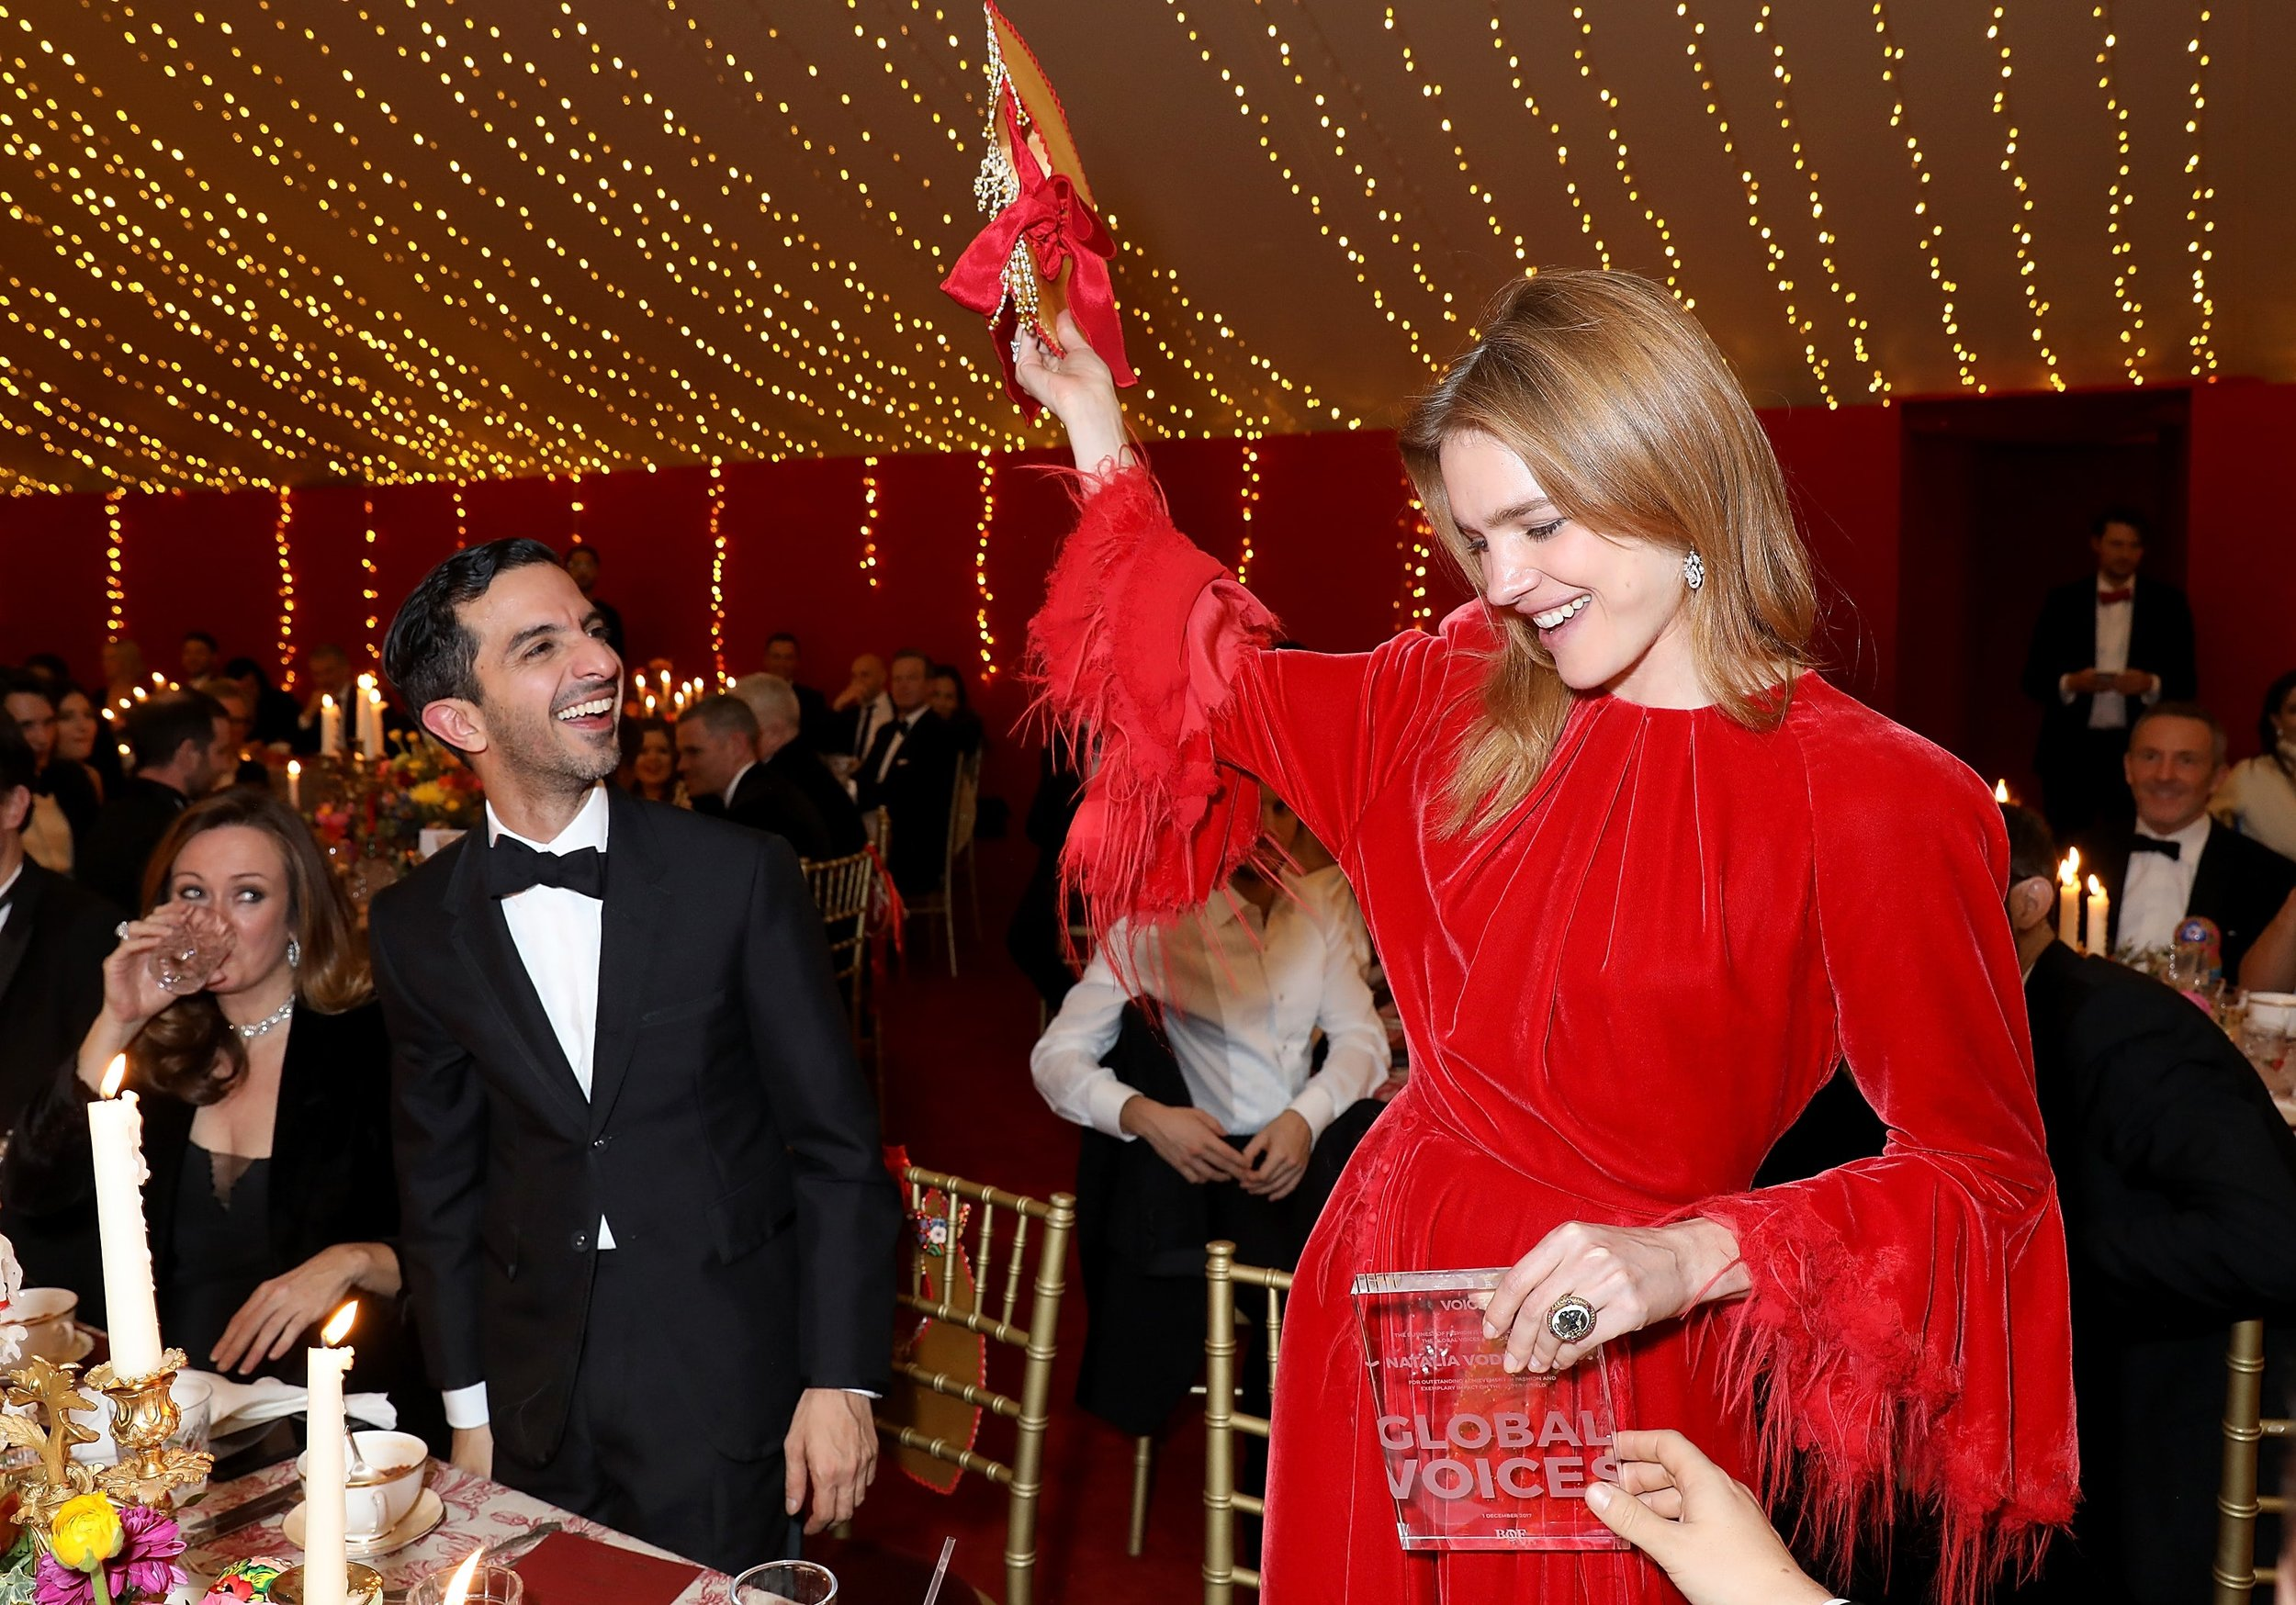 BoF founder Imran Amed and Natalia Vodianova with her Global VOICES 2017 Award at the gala dinner /Photo: Darren Gerrish/Getty Images.